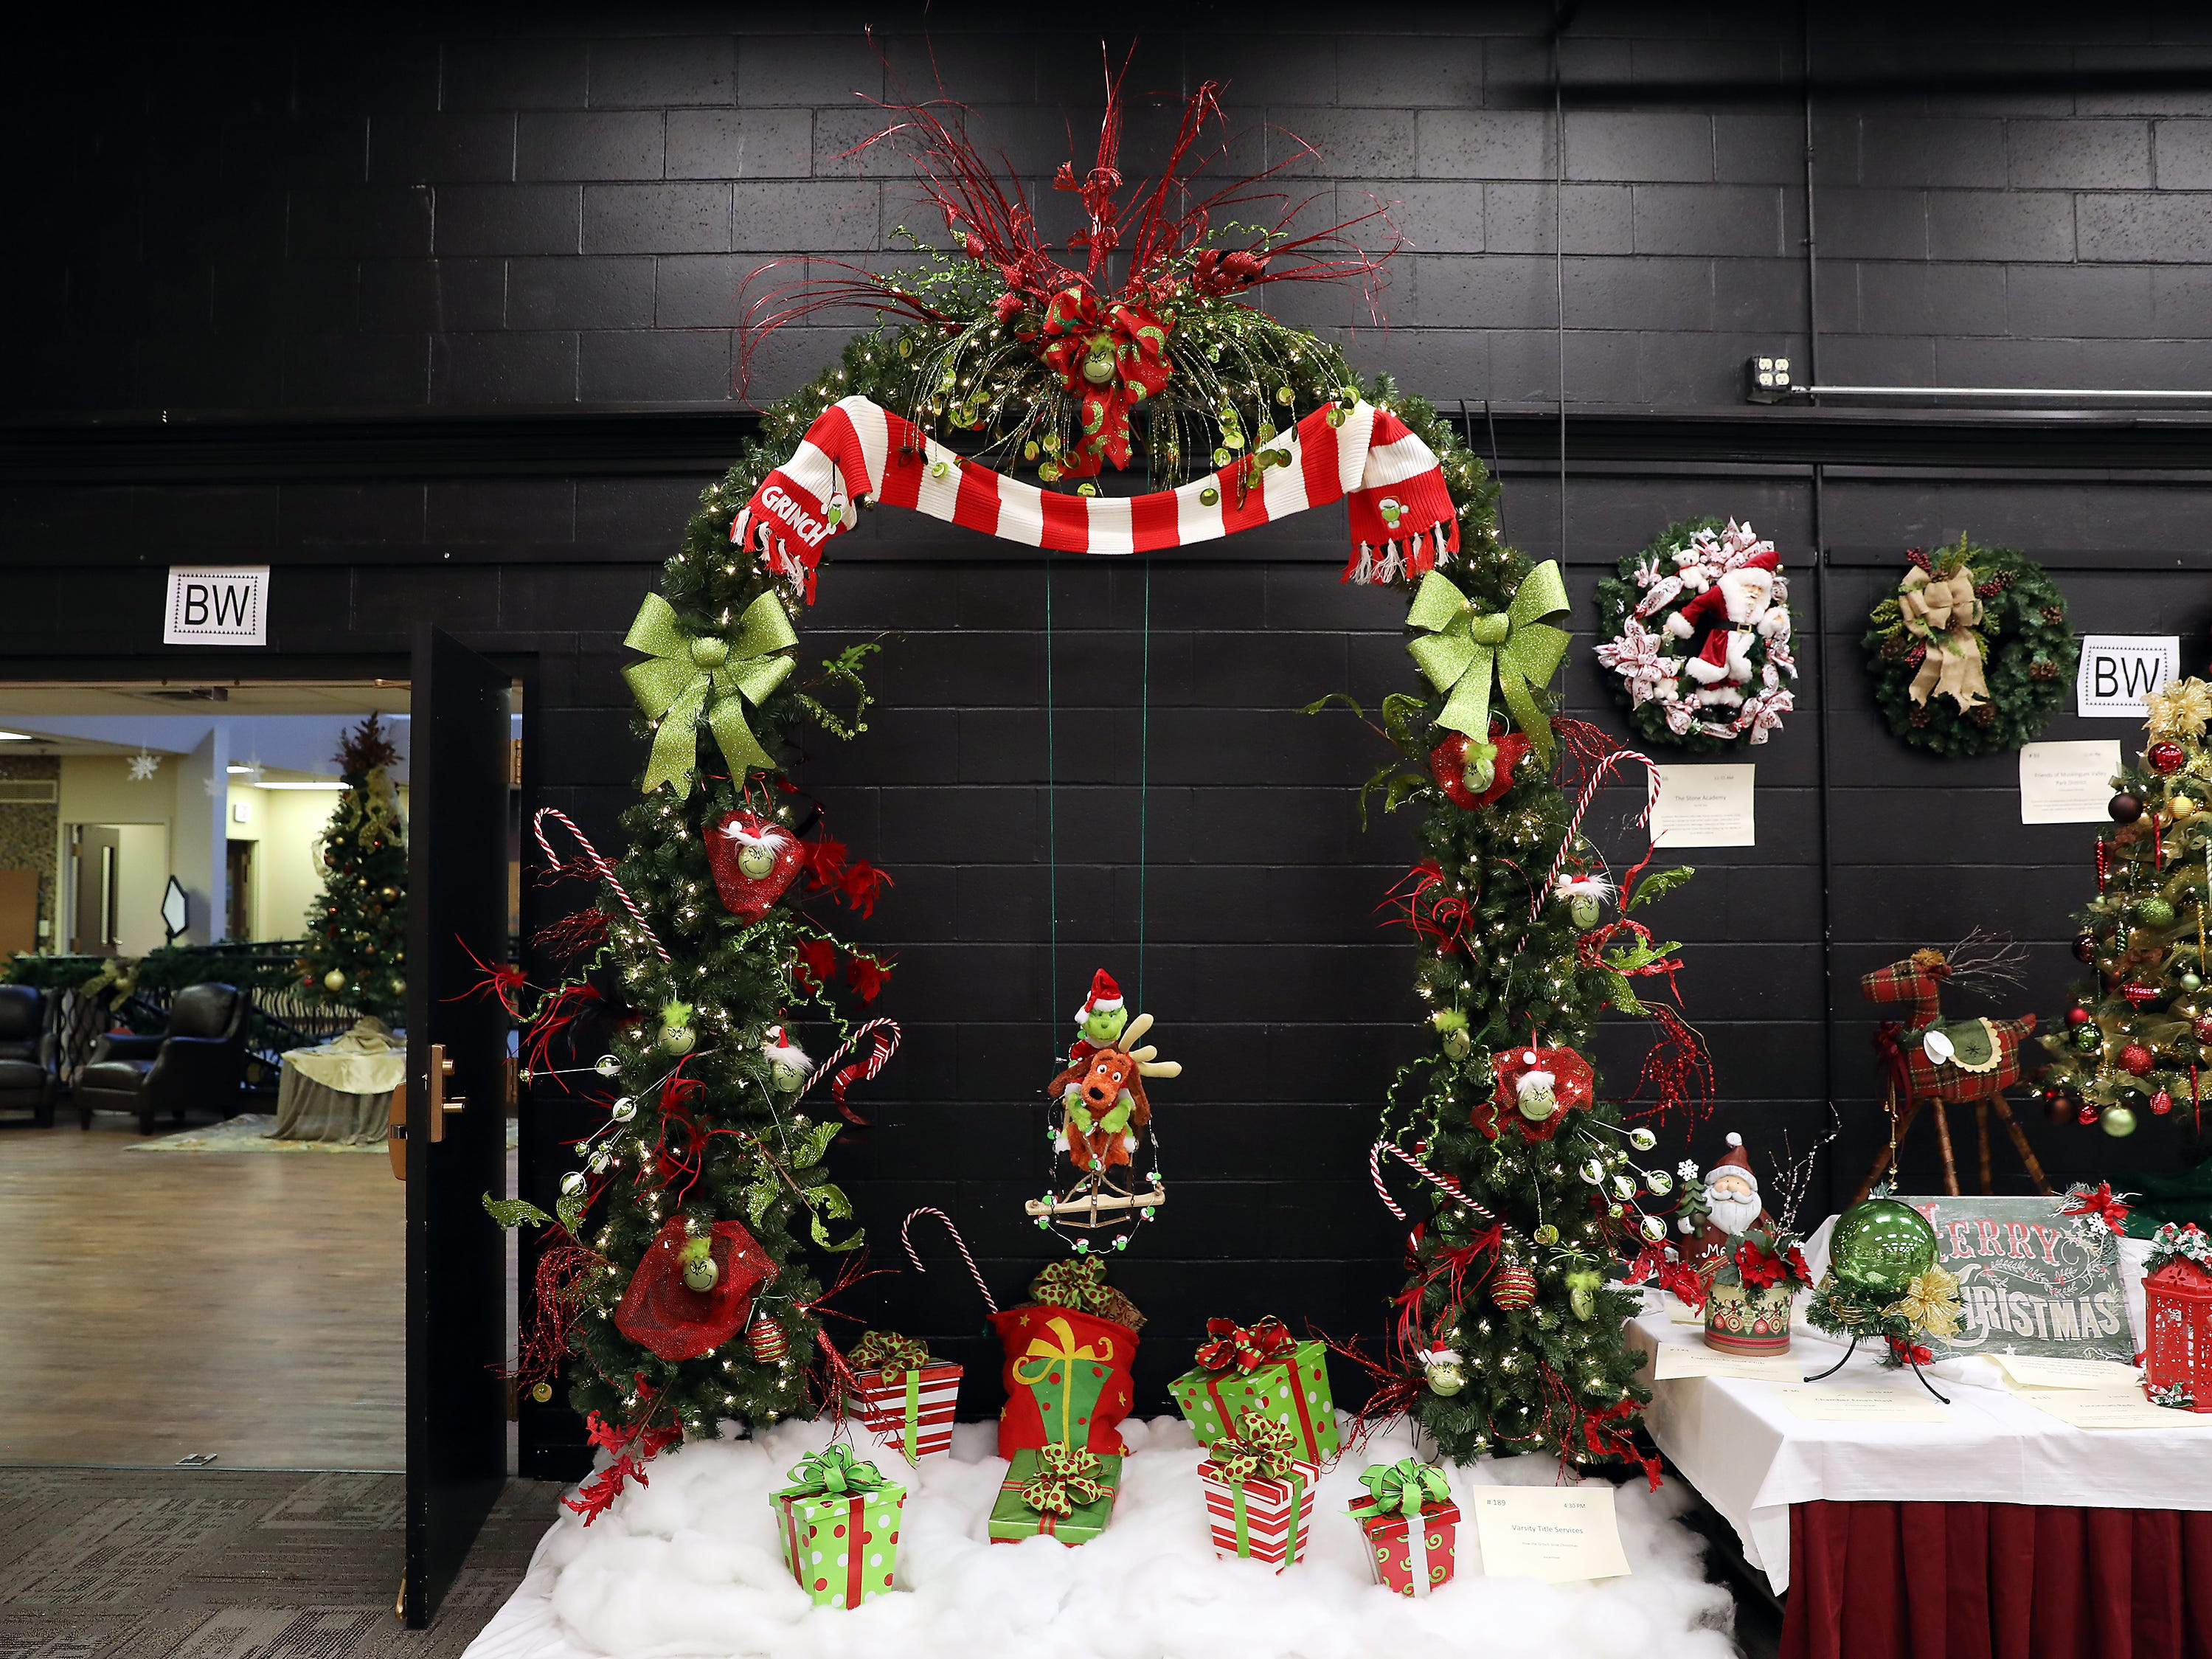 1894:30 PMVarsity Title ServicesLarge TreeHow the Grinch Stole Christmas9' pre-lit fir tree archway with a Grinch theme and the Grinch and Max sitting on a swing in the middle.16x20 autograph Zack Boren domination photo and other assorted OSU football photos.